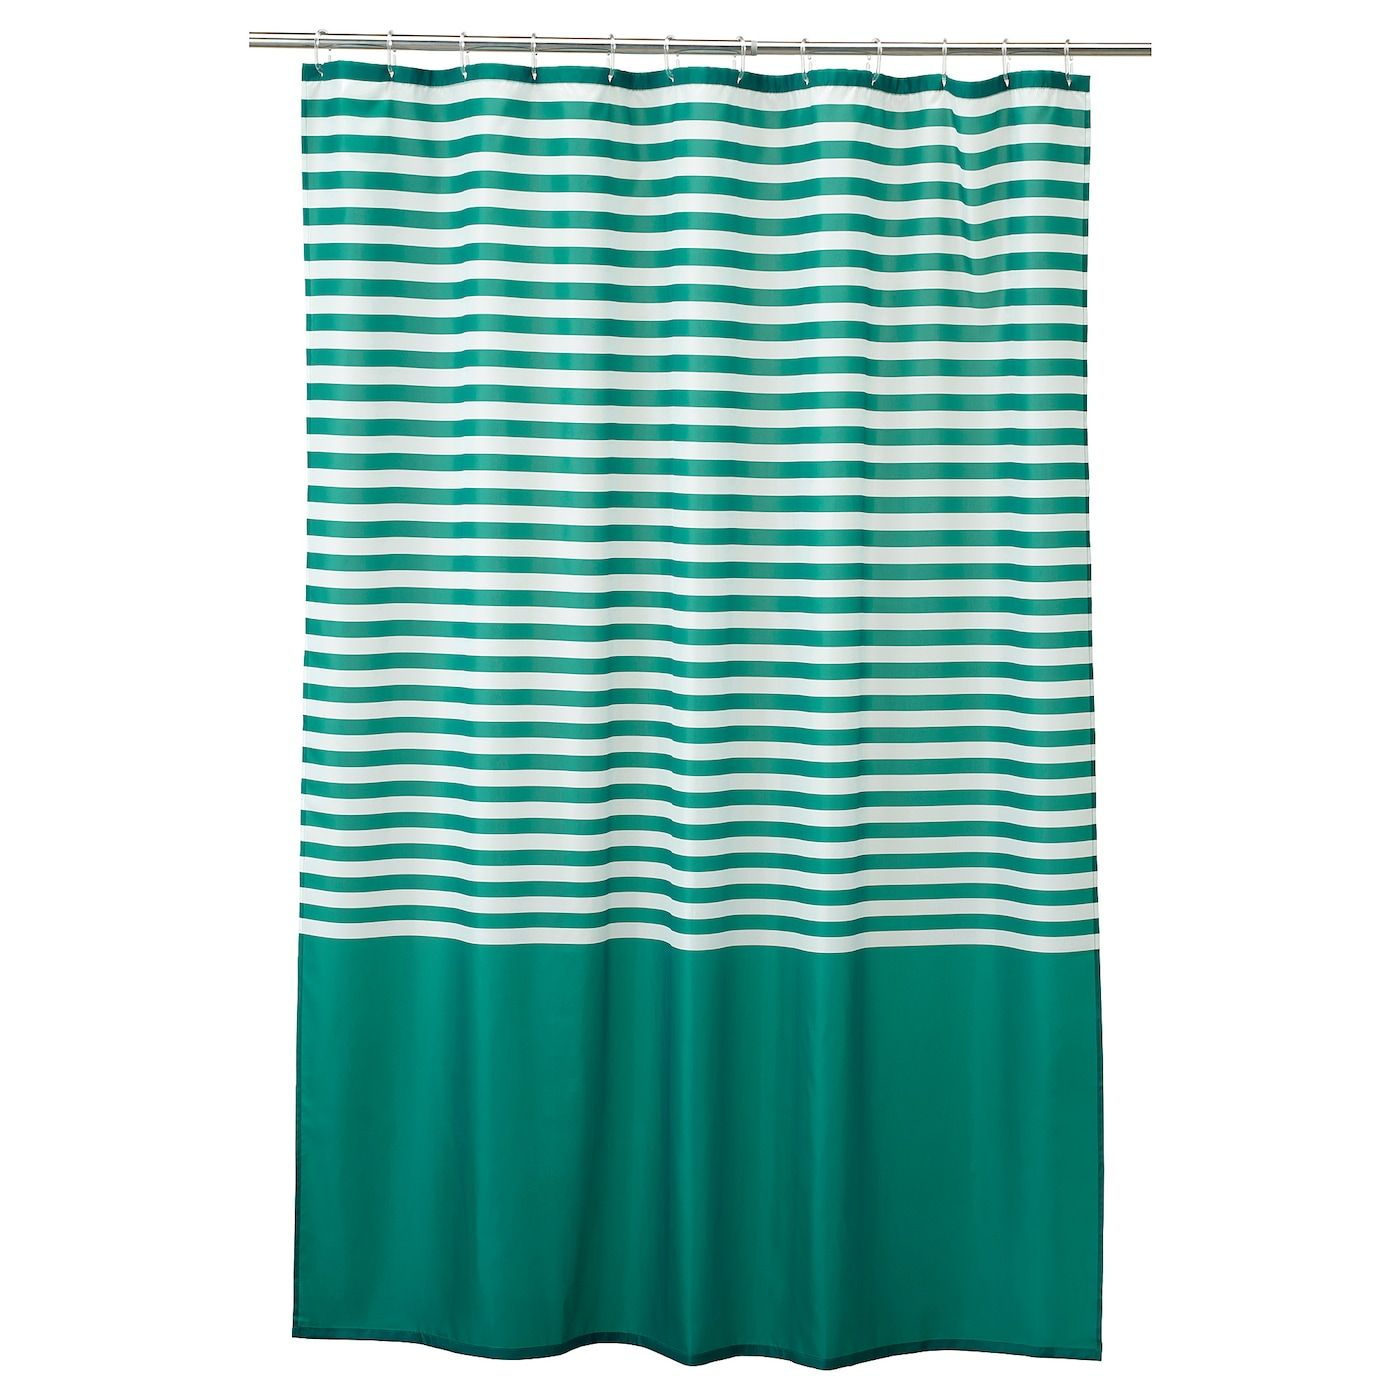 Vadsjon Shower Curtain Dark Green 71x71 In 2020 Dark